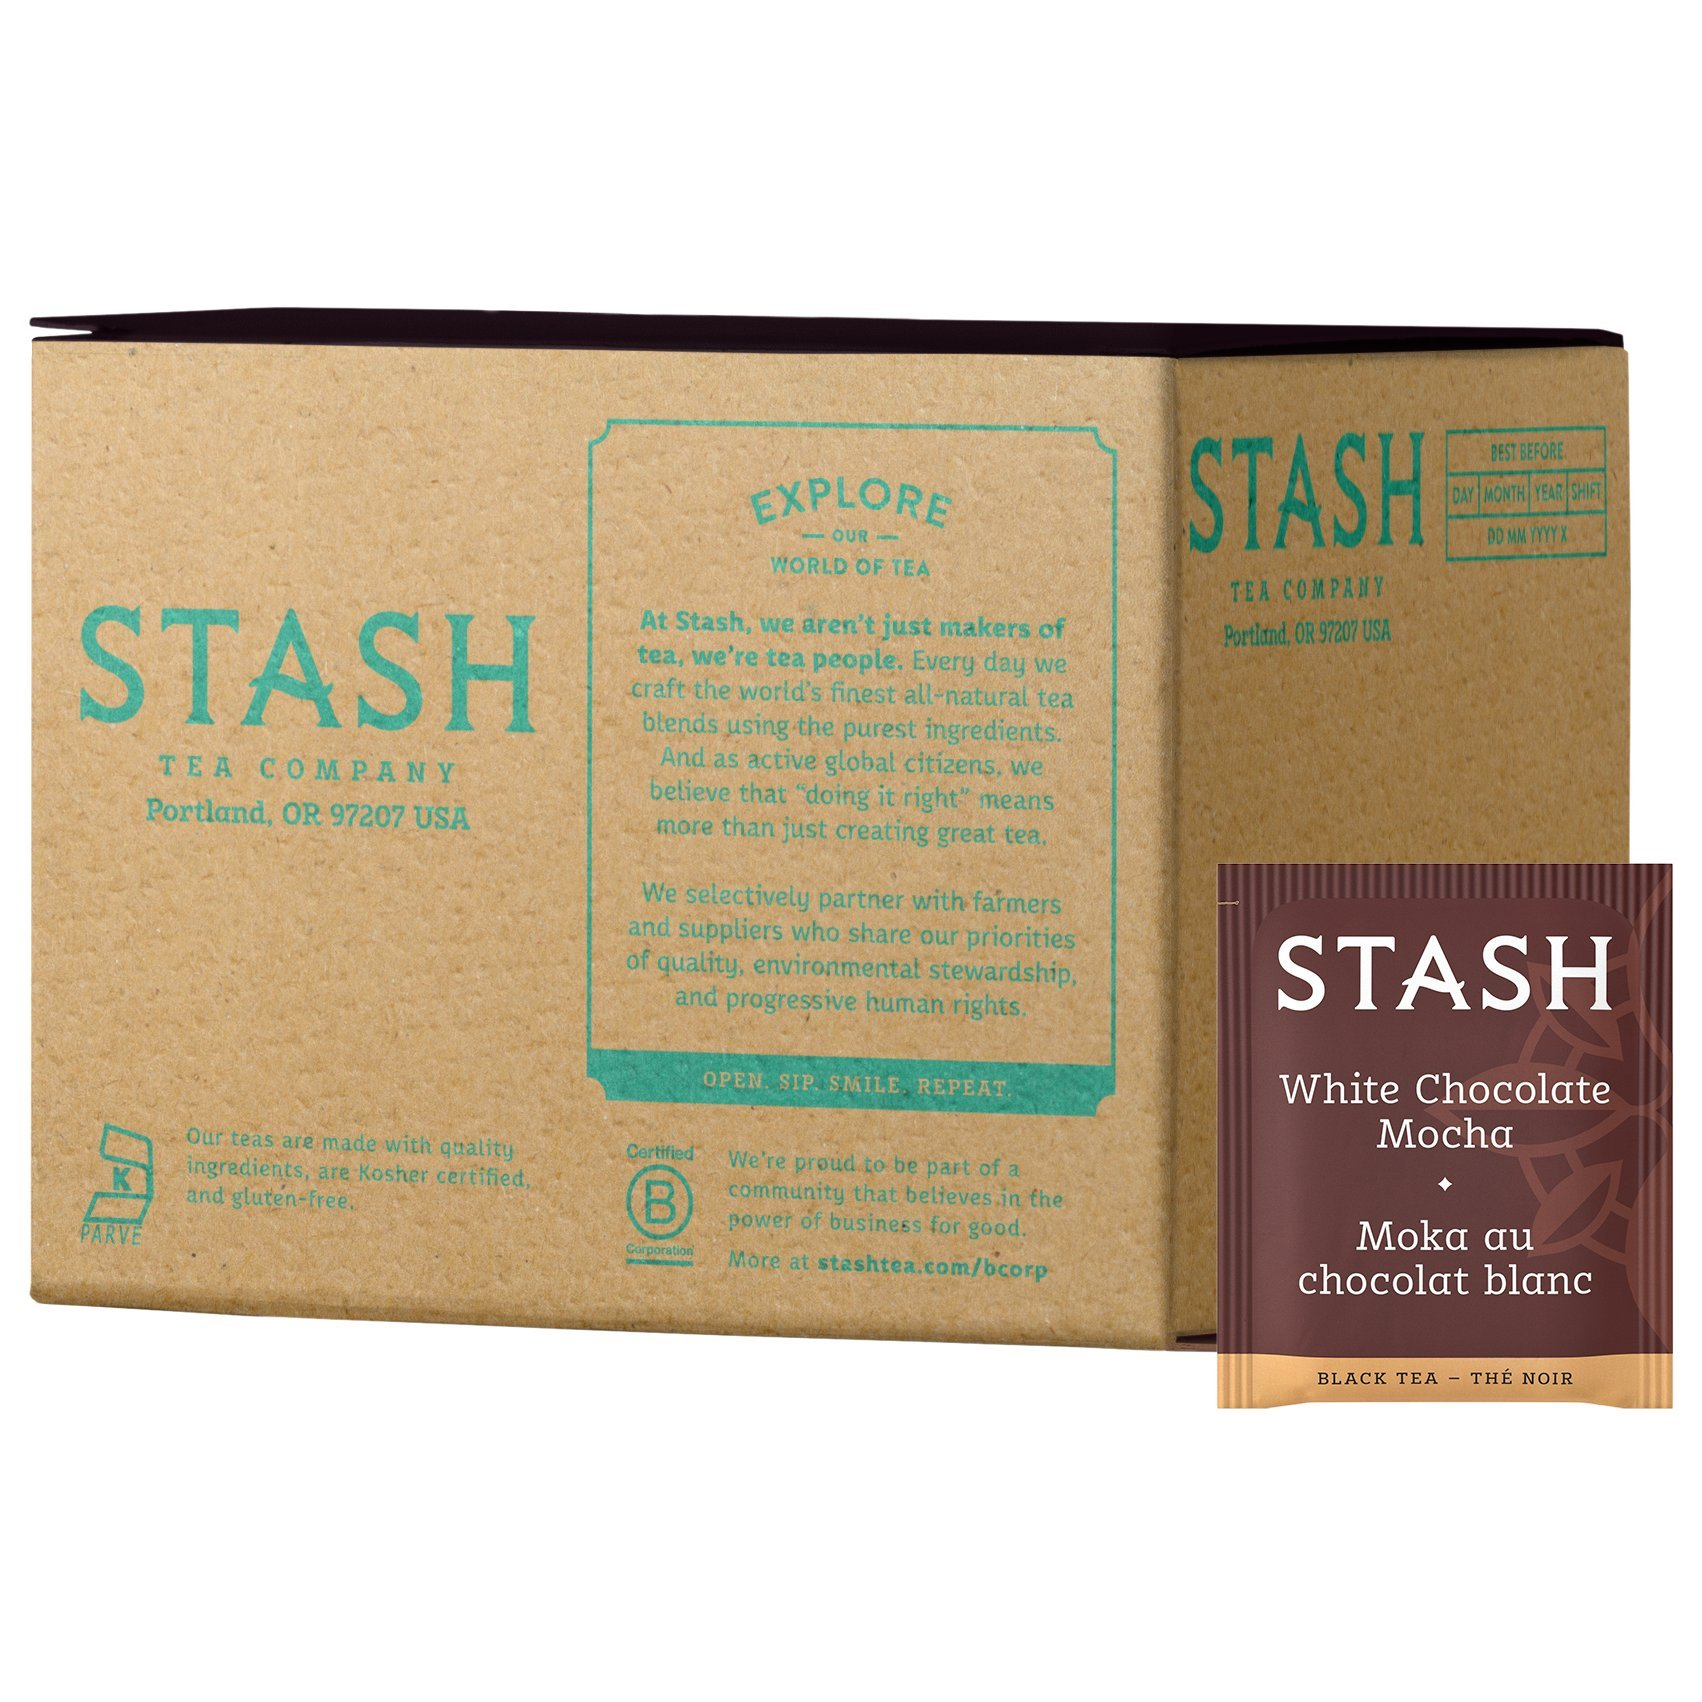 Stash Tea Teabags, White Chocolate Mocha, 100 Count (packaging may vary)